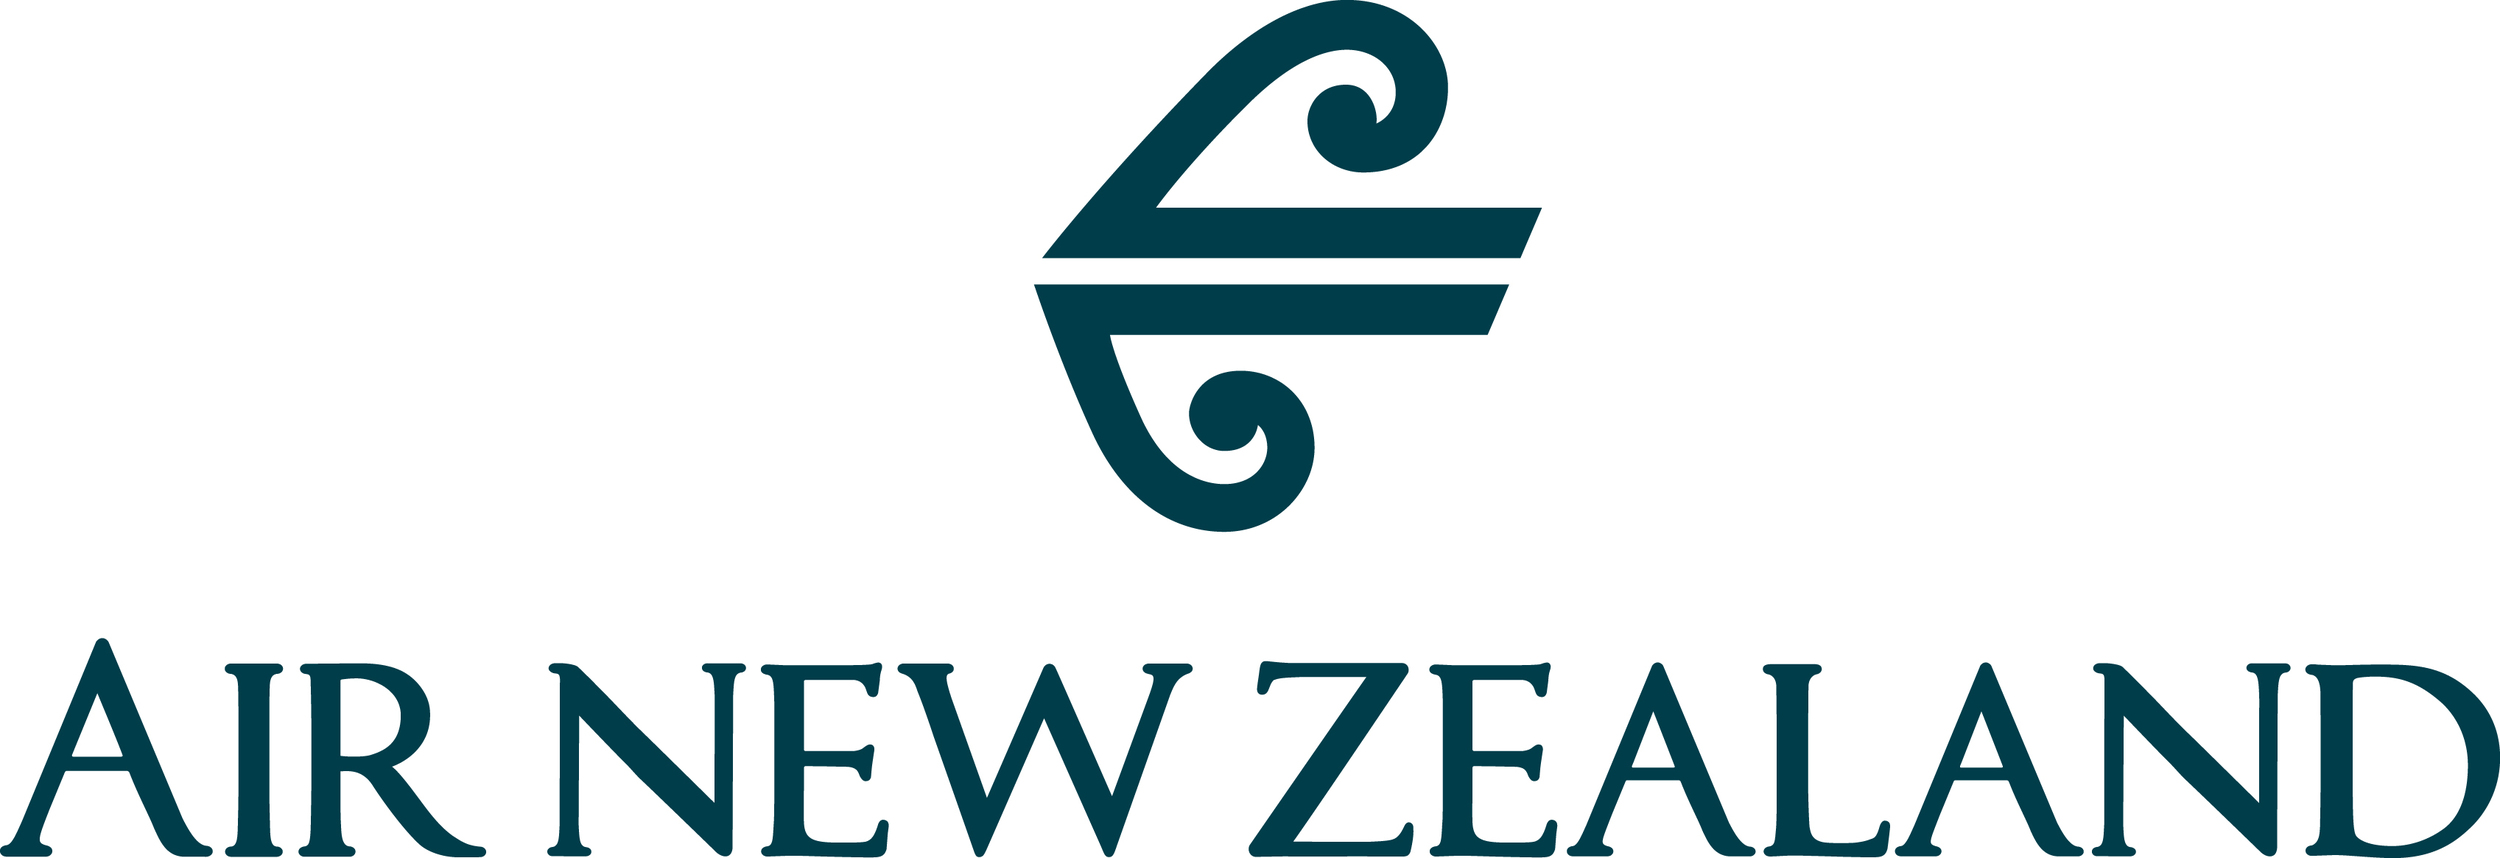 air-new-zealand-logo.jpg